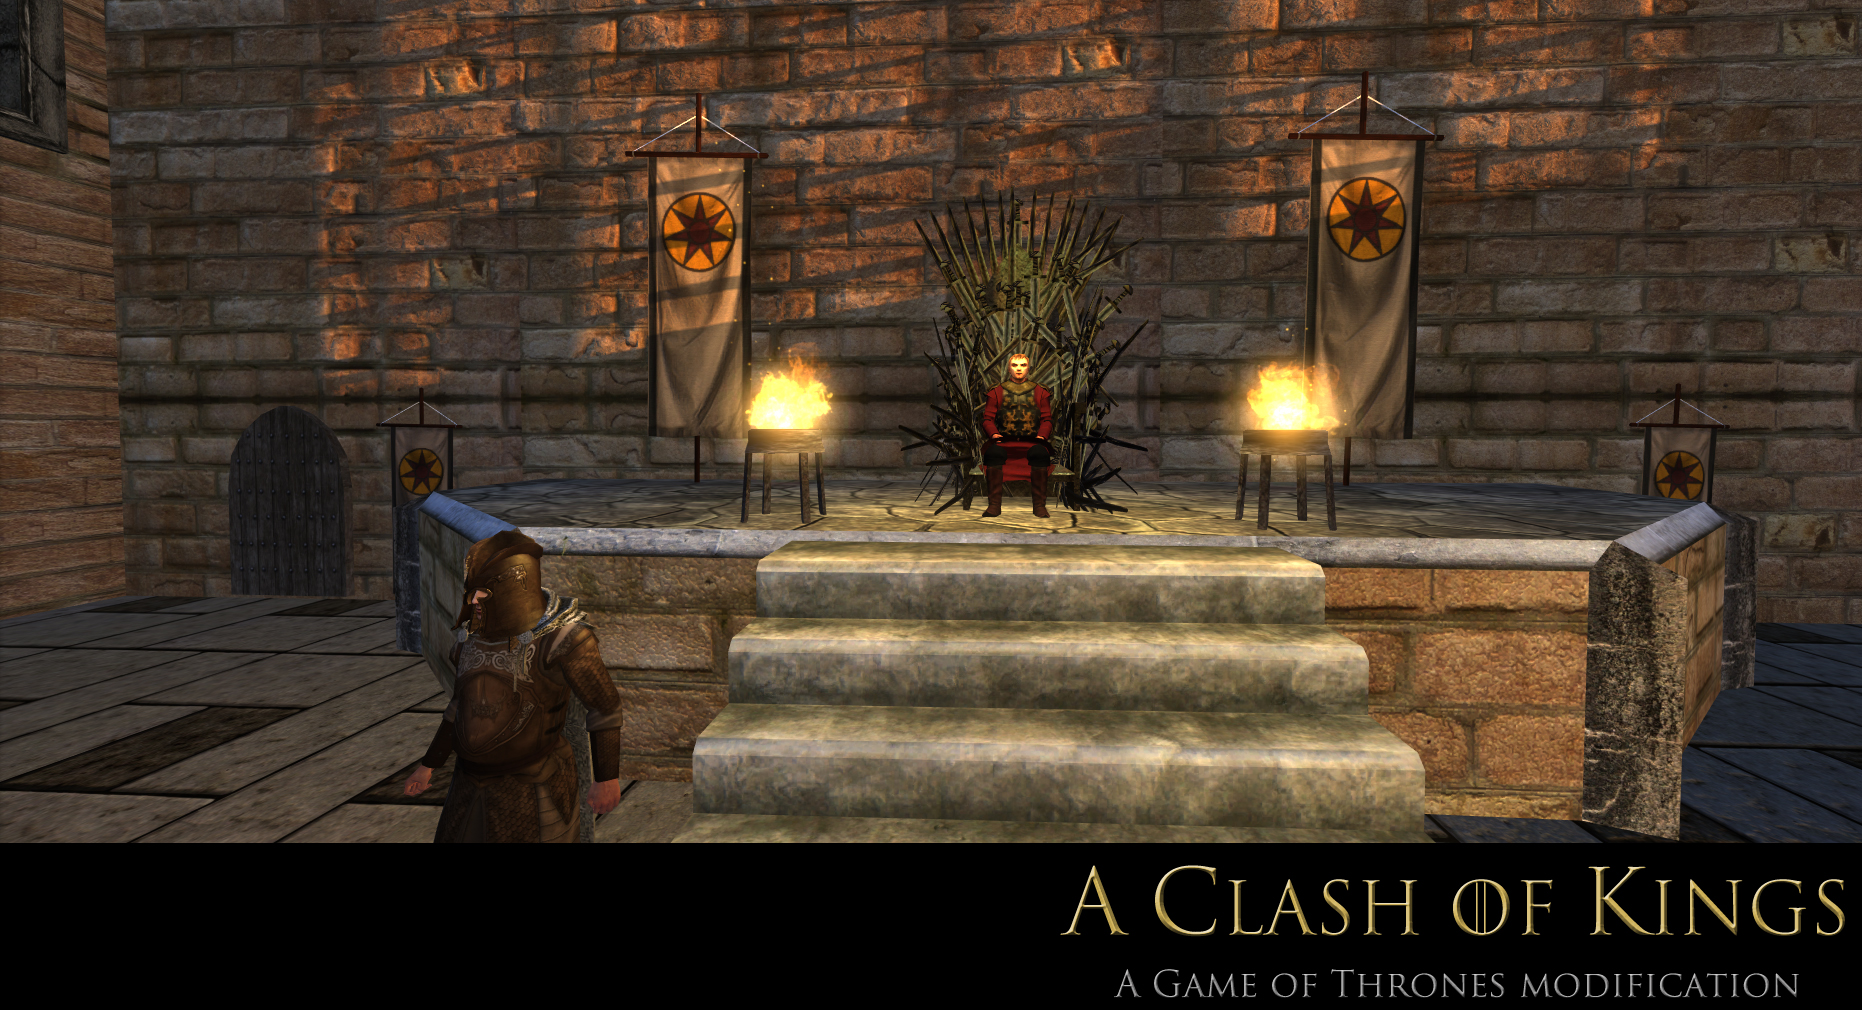 [SP][ES] A Clash of Kings - Página 37 Joffrey_on_the_throne